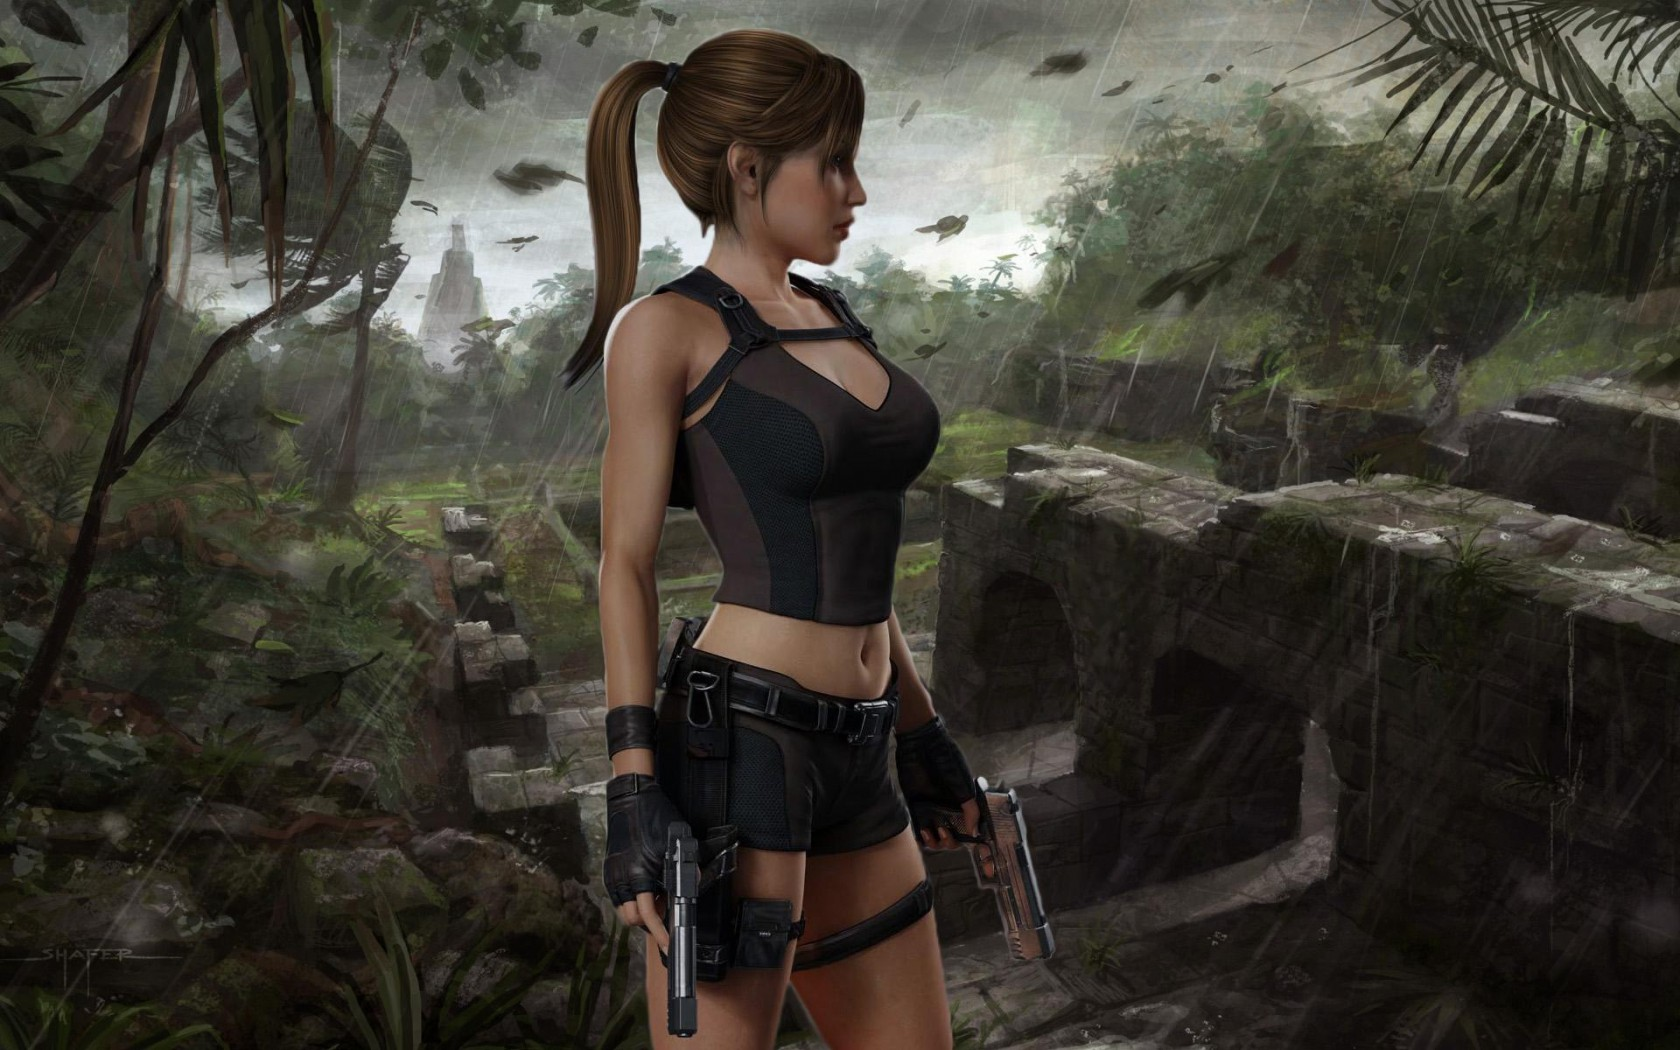 Tomb Raider Wallpaper And Background Image  1680X1050  Id322131 - Wallpaper Abyss-8858